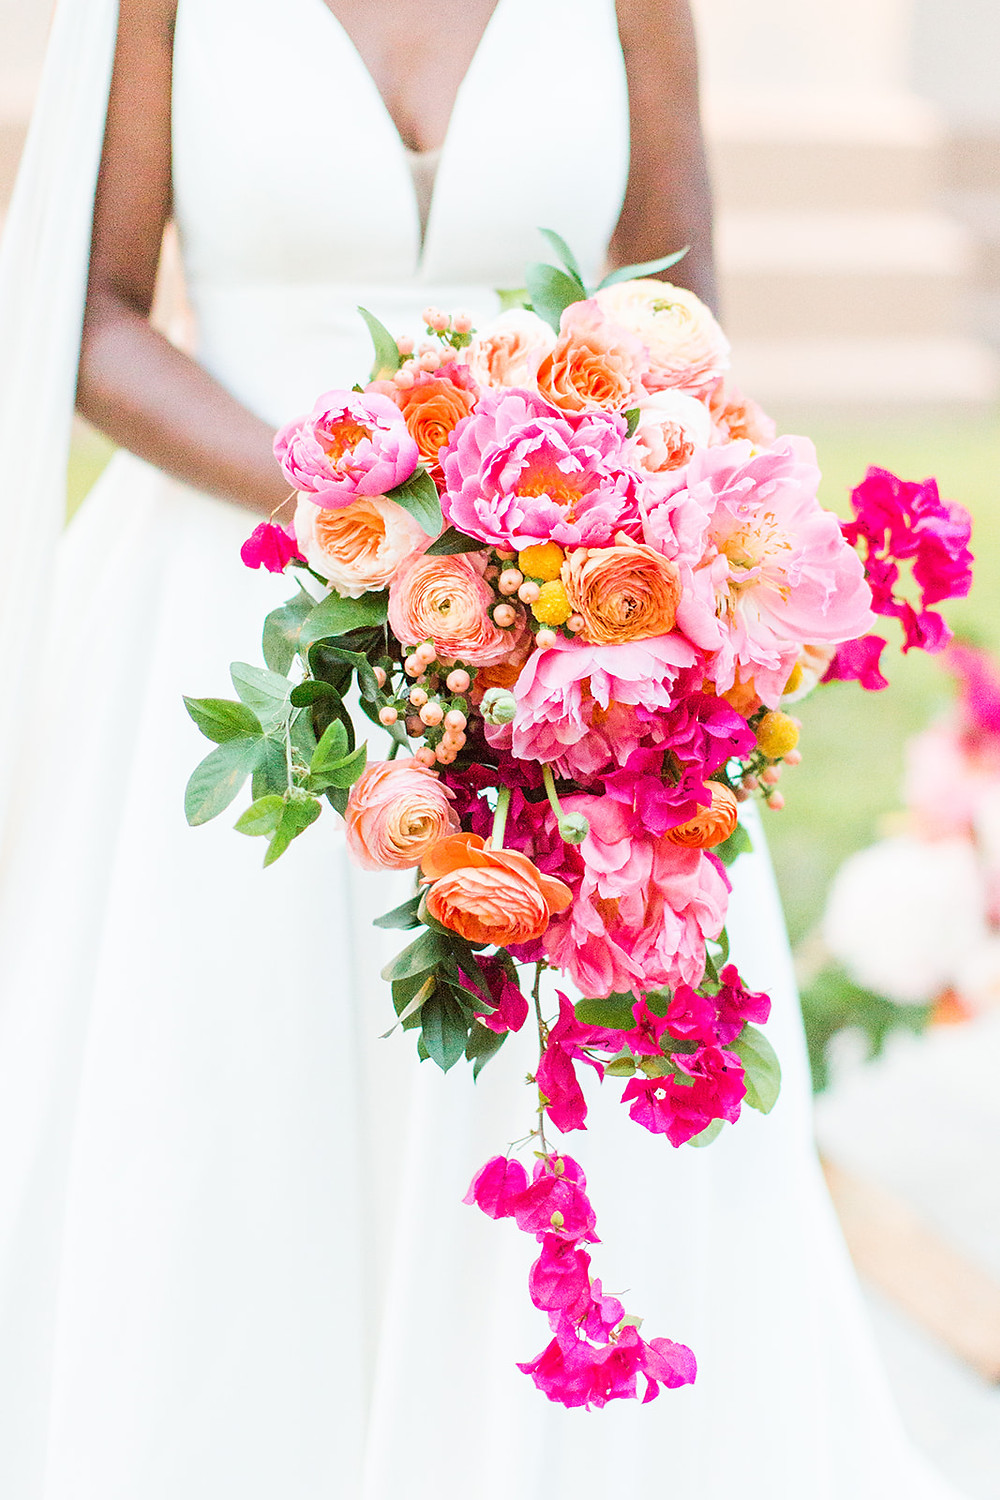 Bride holding waterfall bouquet of bright pink and orange flowers